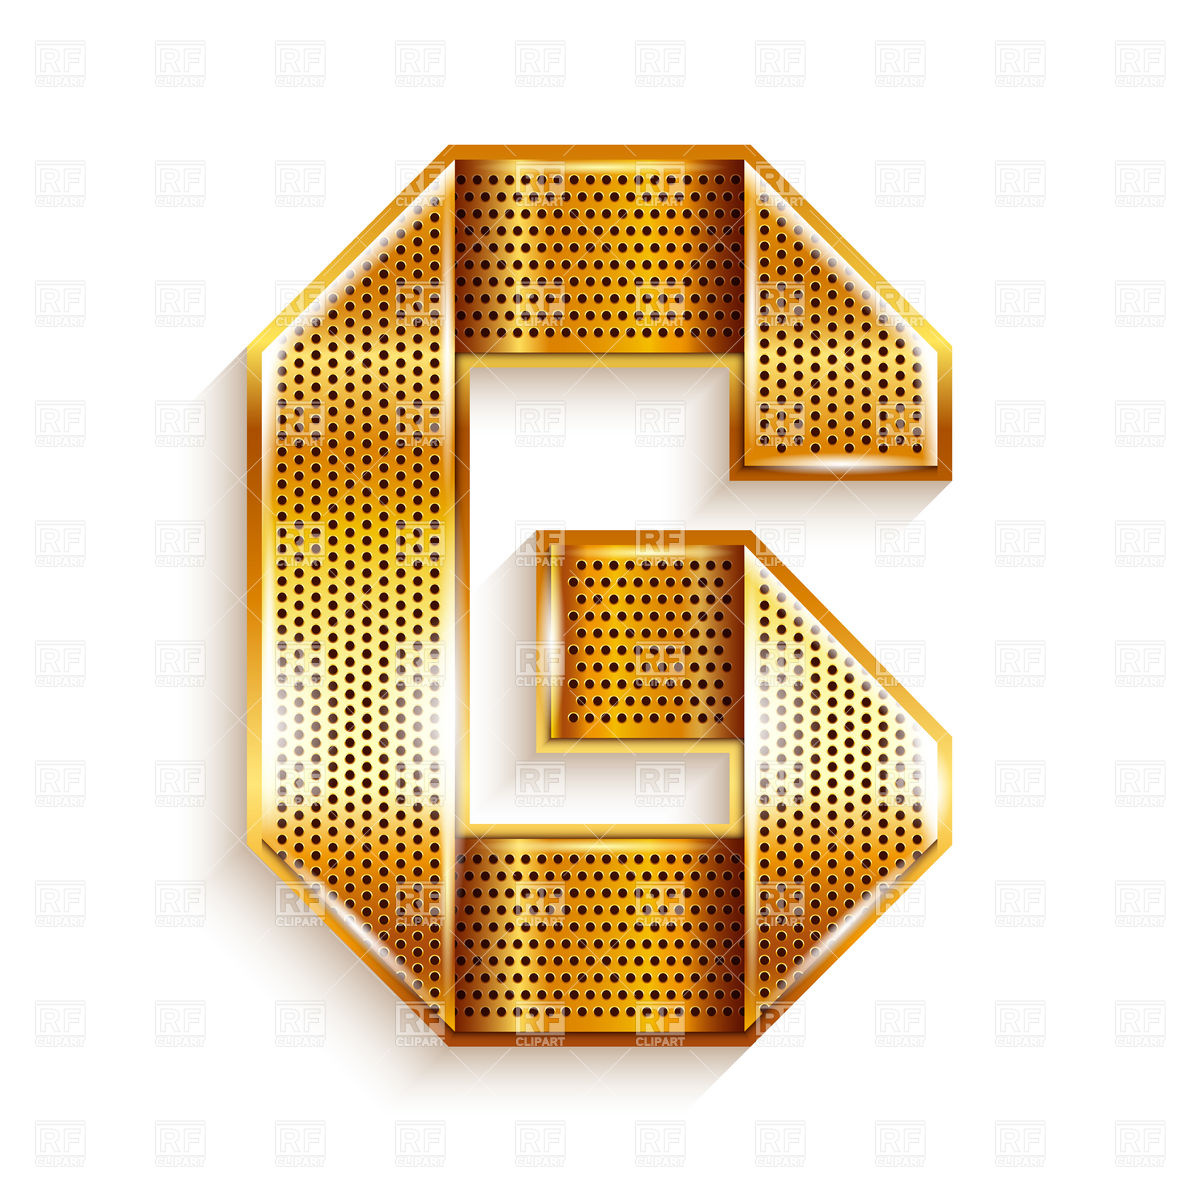 1200x1200 Alphabet Made Of Golden Perforated Tape, Letter G Vector Image